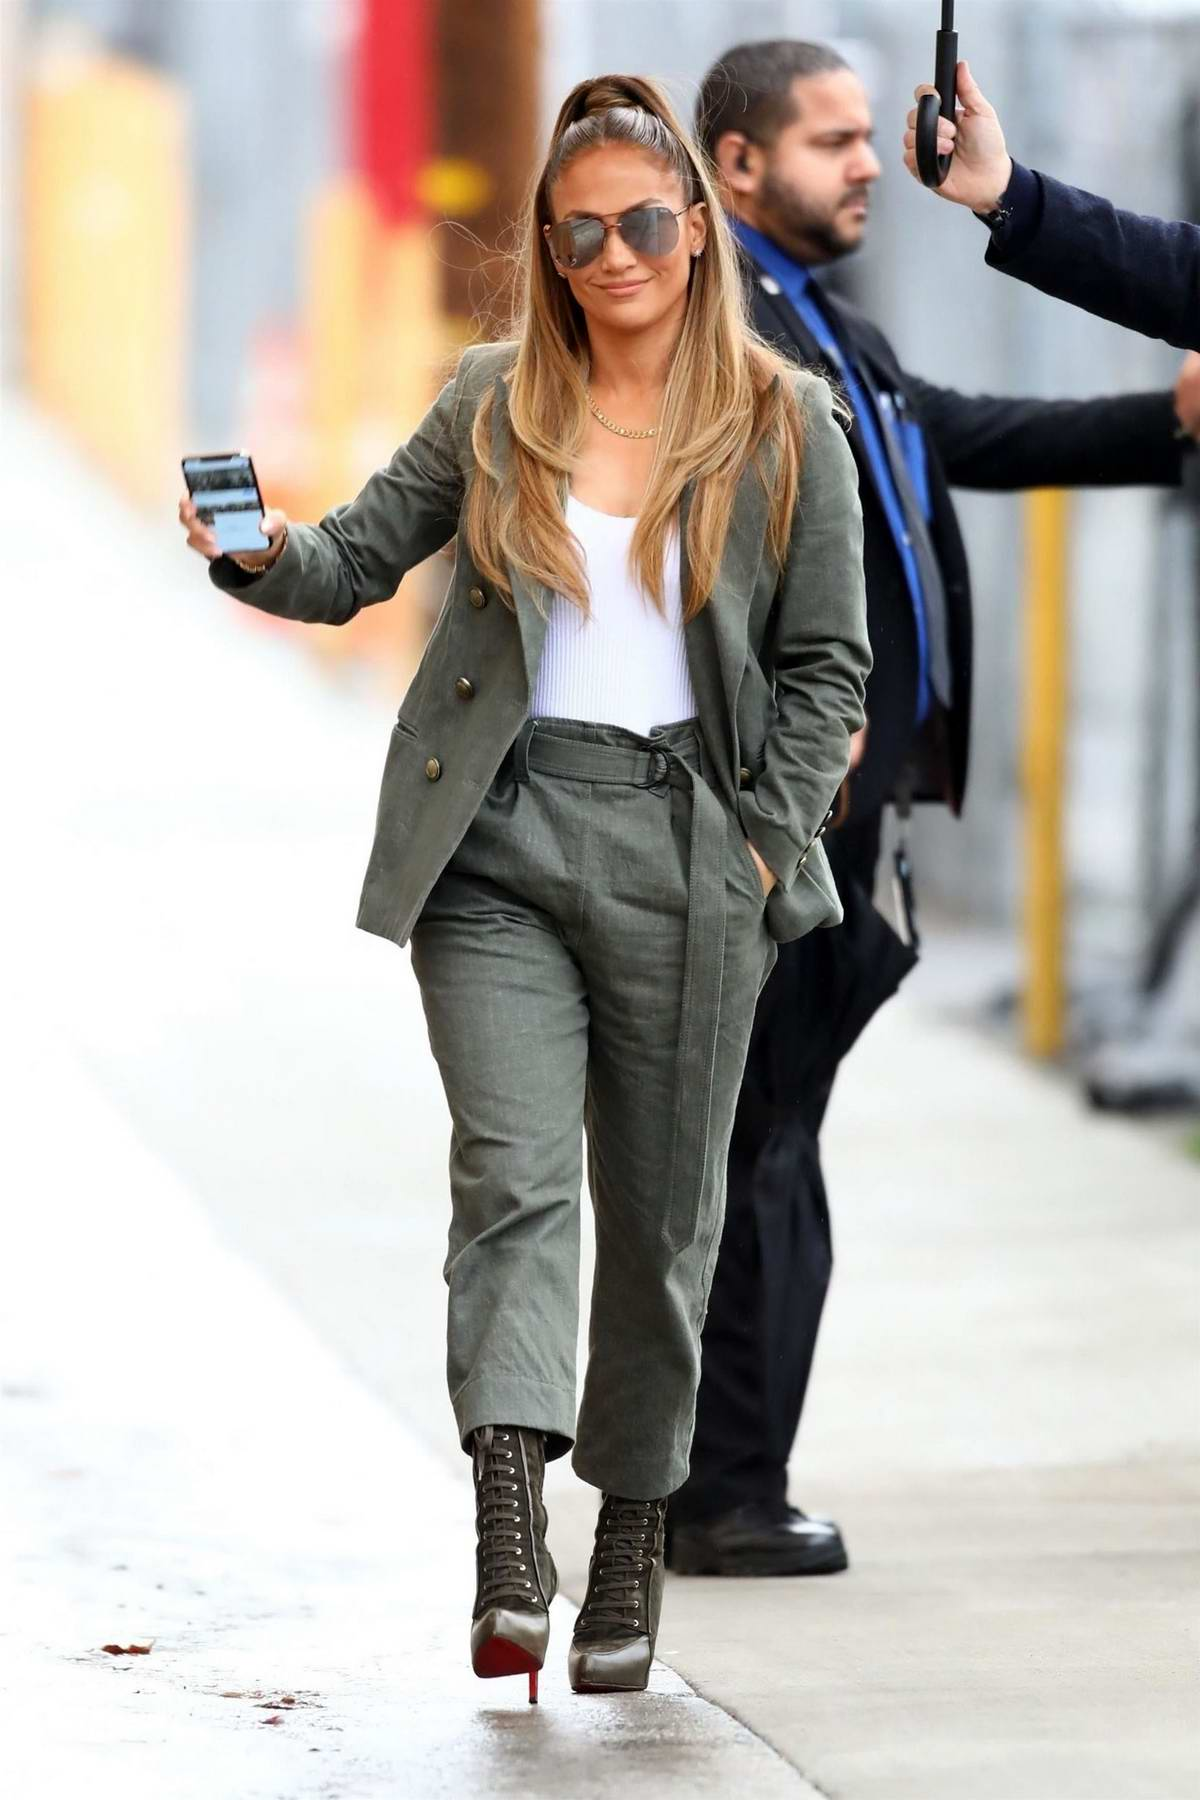 Jennifer looks stylish in a grey jacket, white tank top, grey pants as she arrives at Jimmy Kimmel Live! in Hollywood, Los Angeles